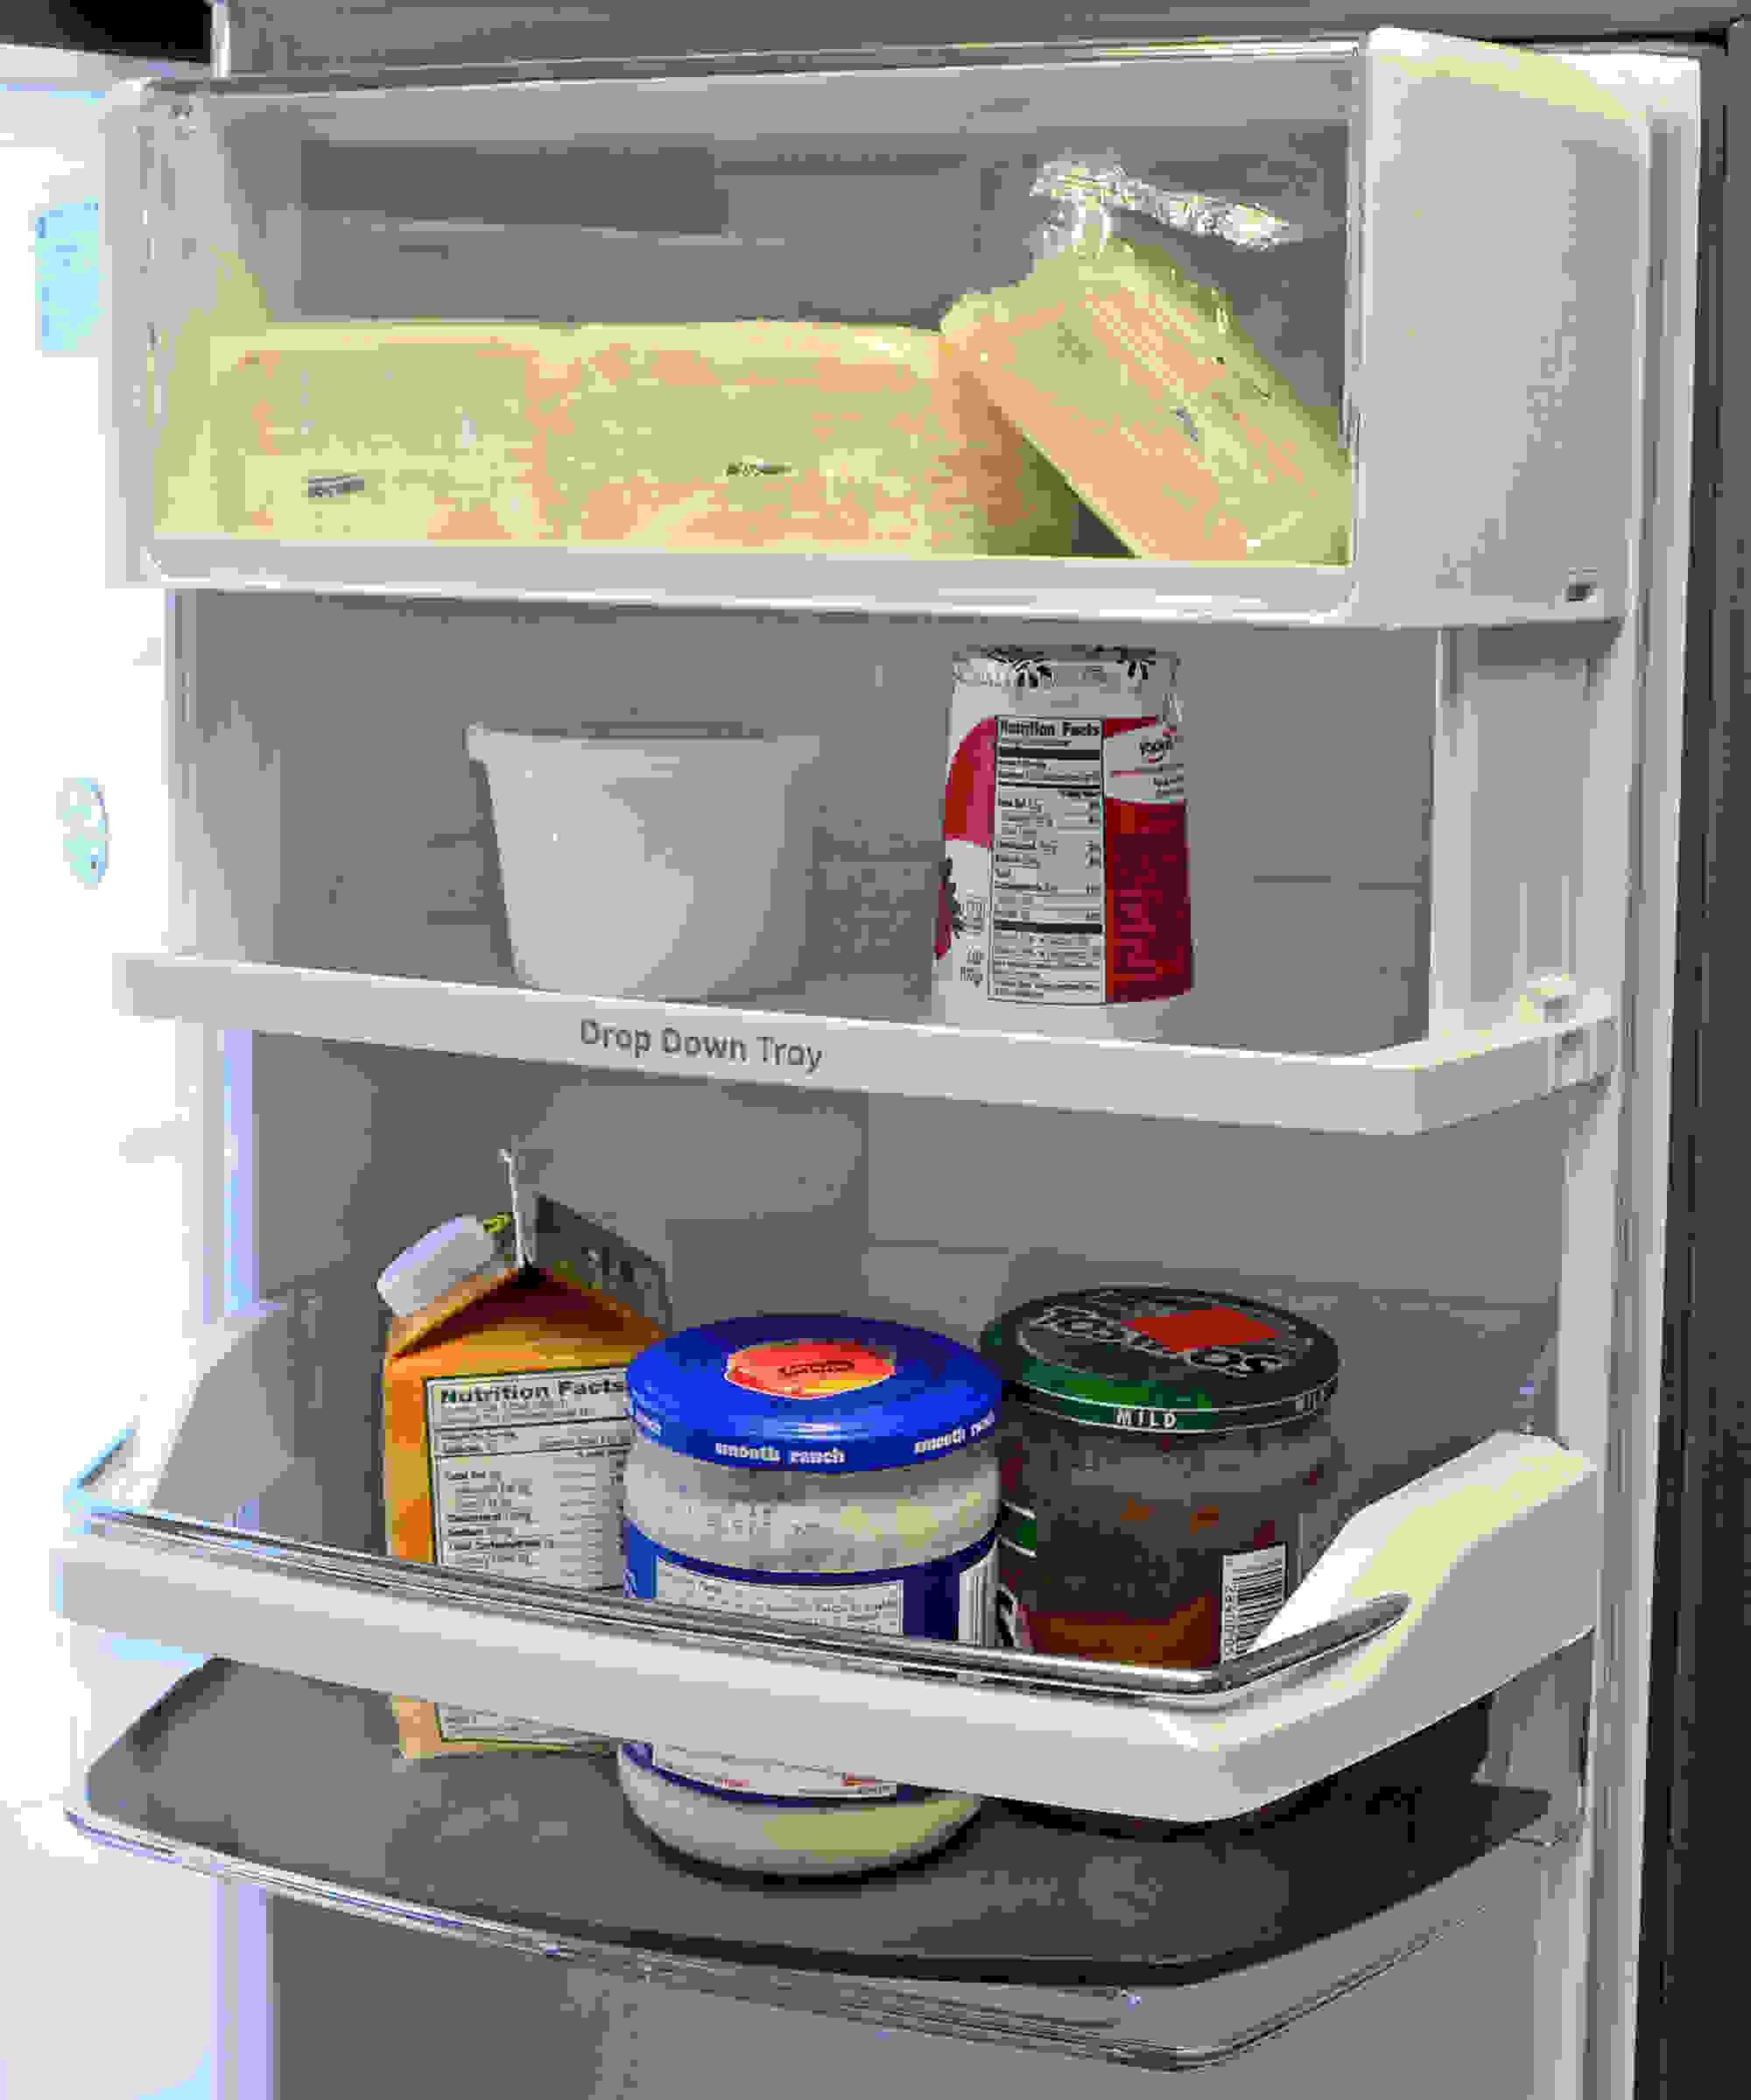 The GE Cafe CFE28TSHSS's drop down tray is great if you plan to store a lot of shorter items on the door.